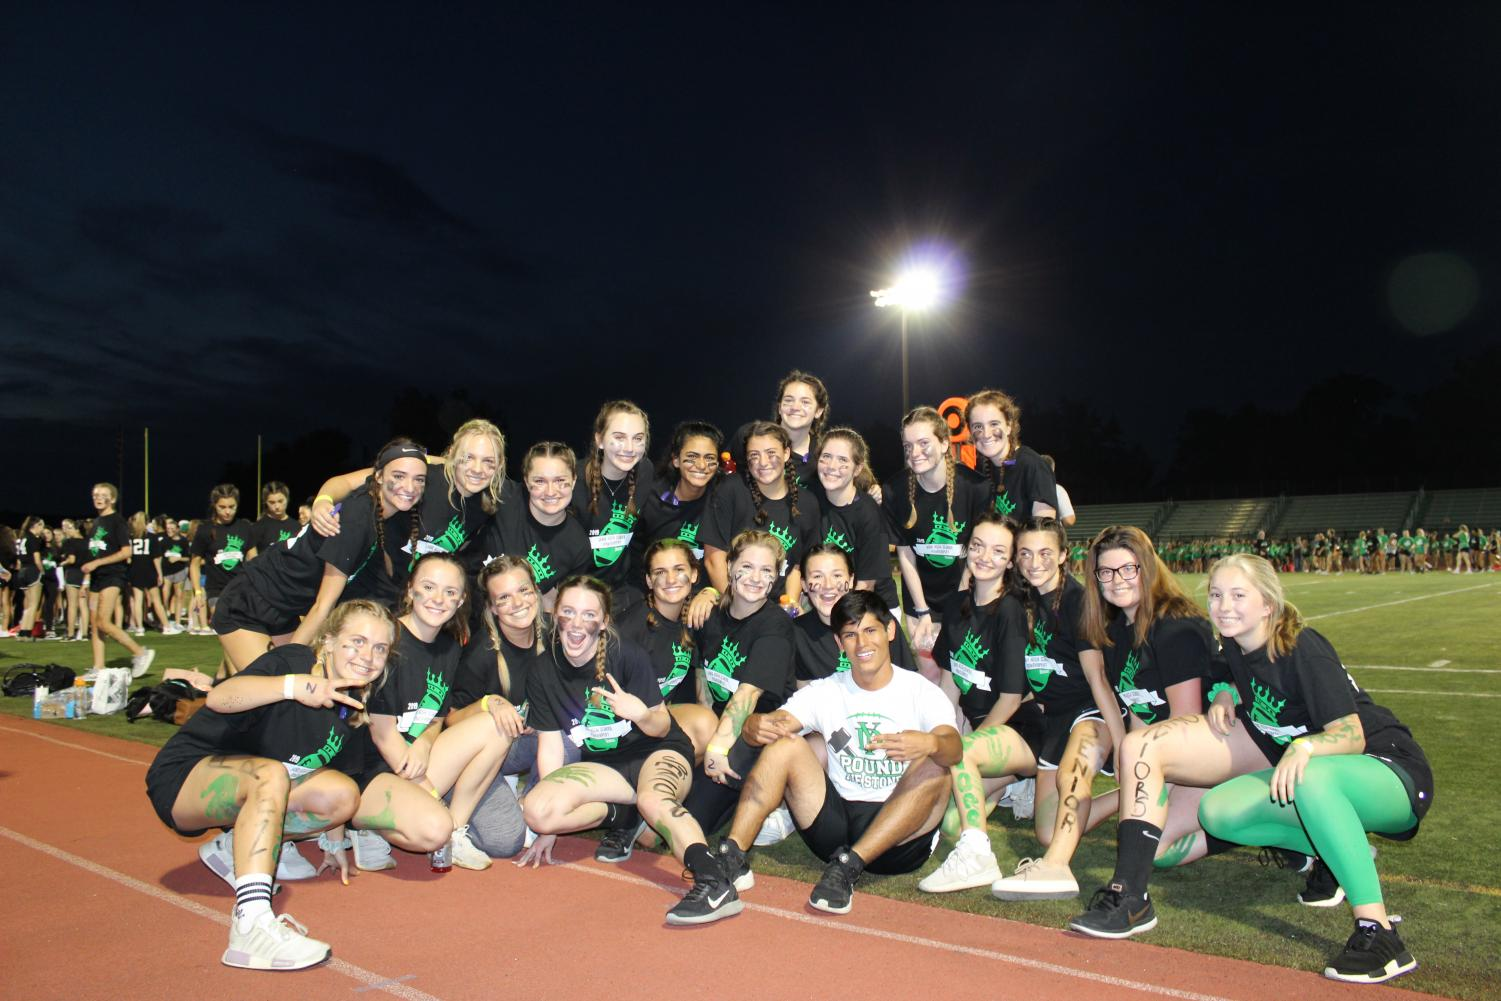 Quarter two seniors pose for a picture at the annual powder puff game.